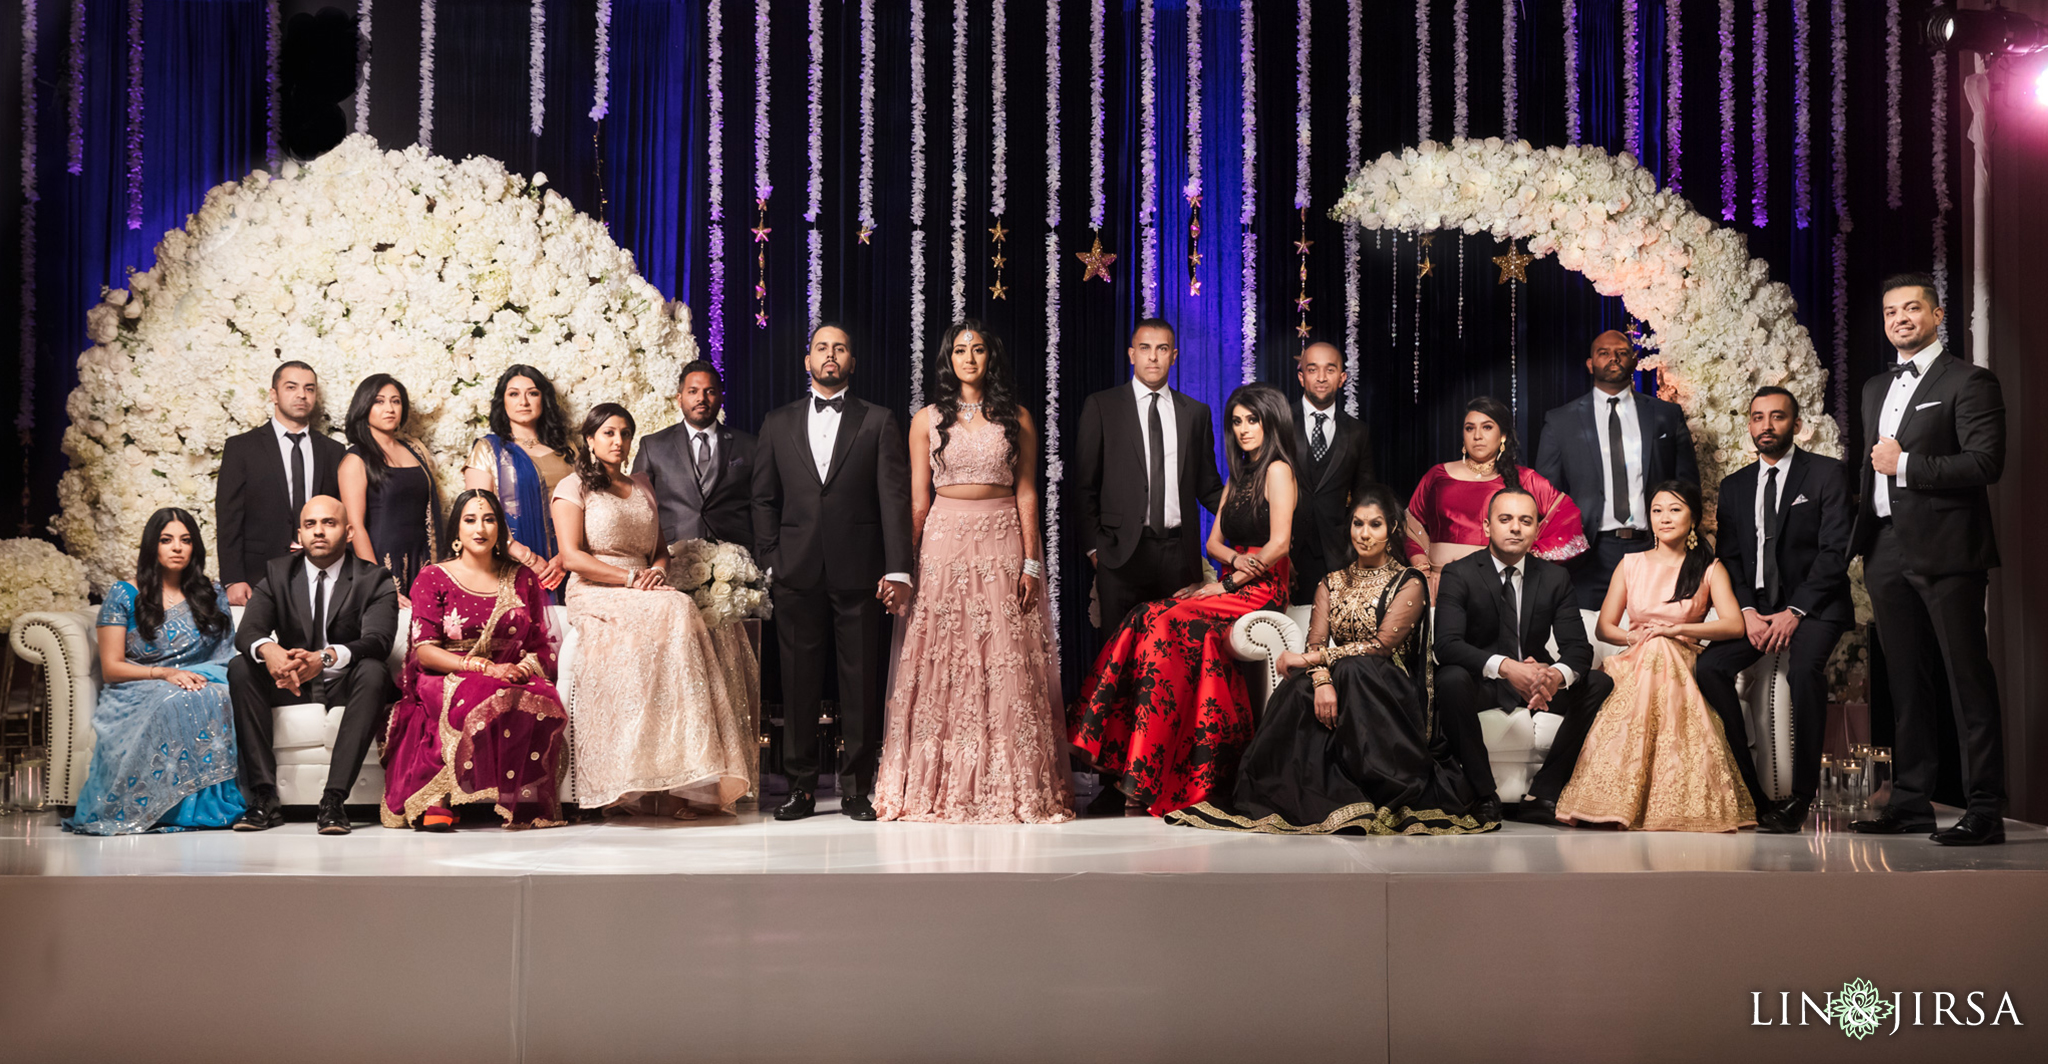 10 Hotel Irvine Joint Indian Reception Wedding Photography